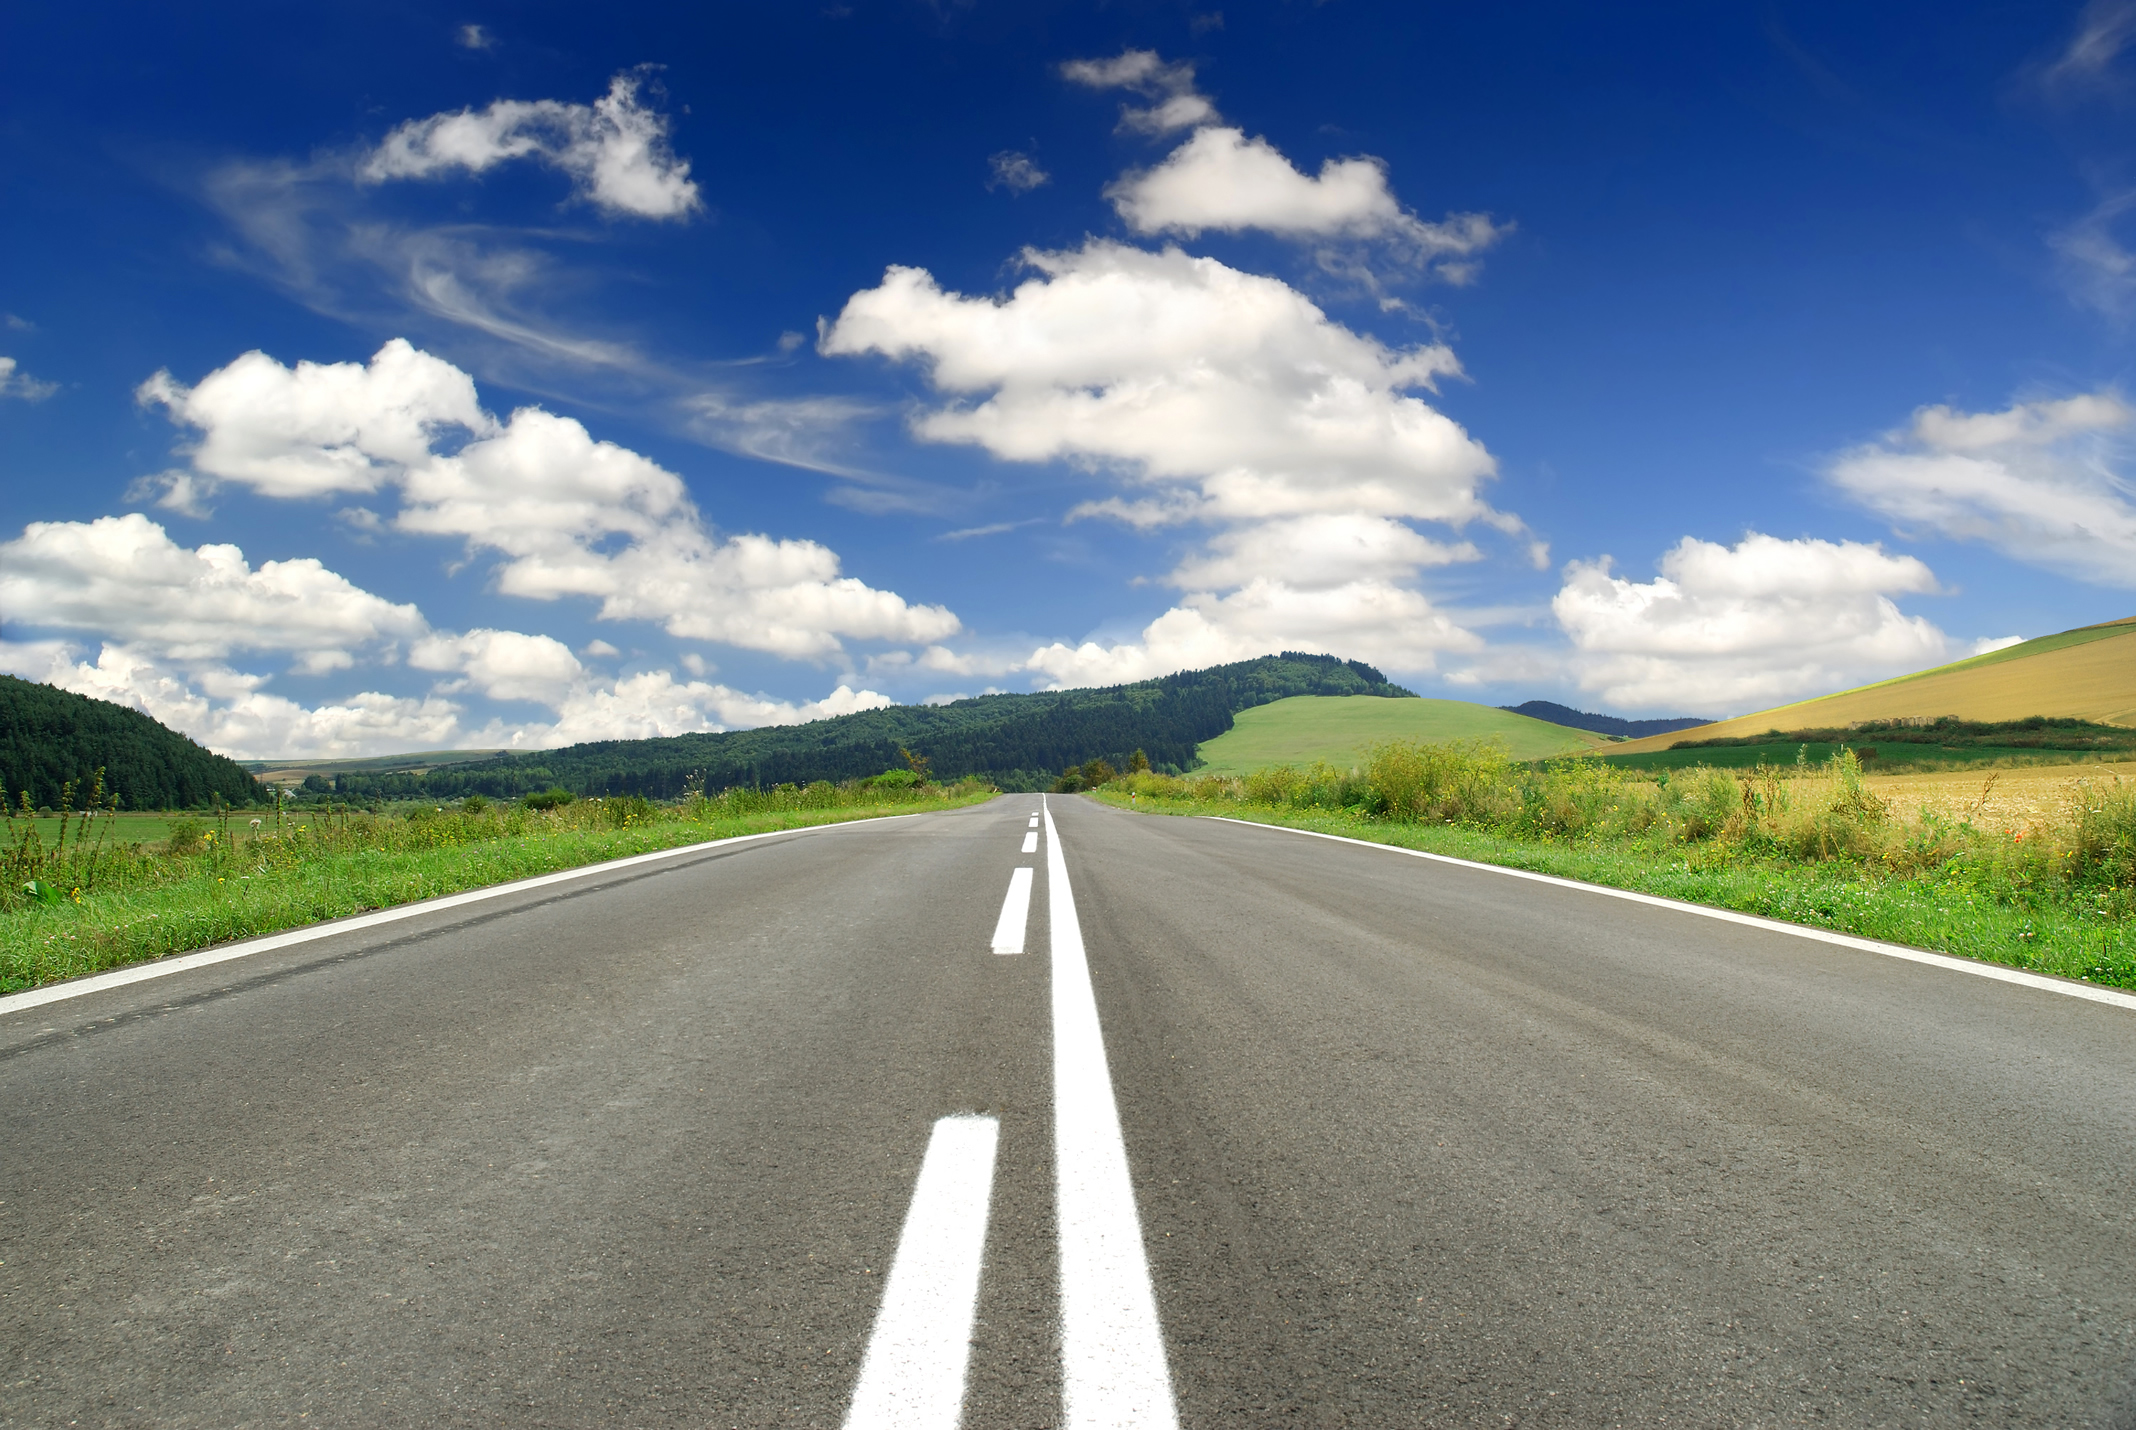 Country clipart lane Download best Clipart images Download